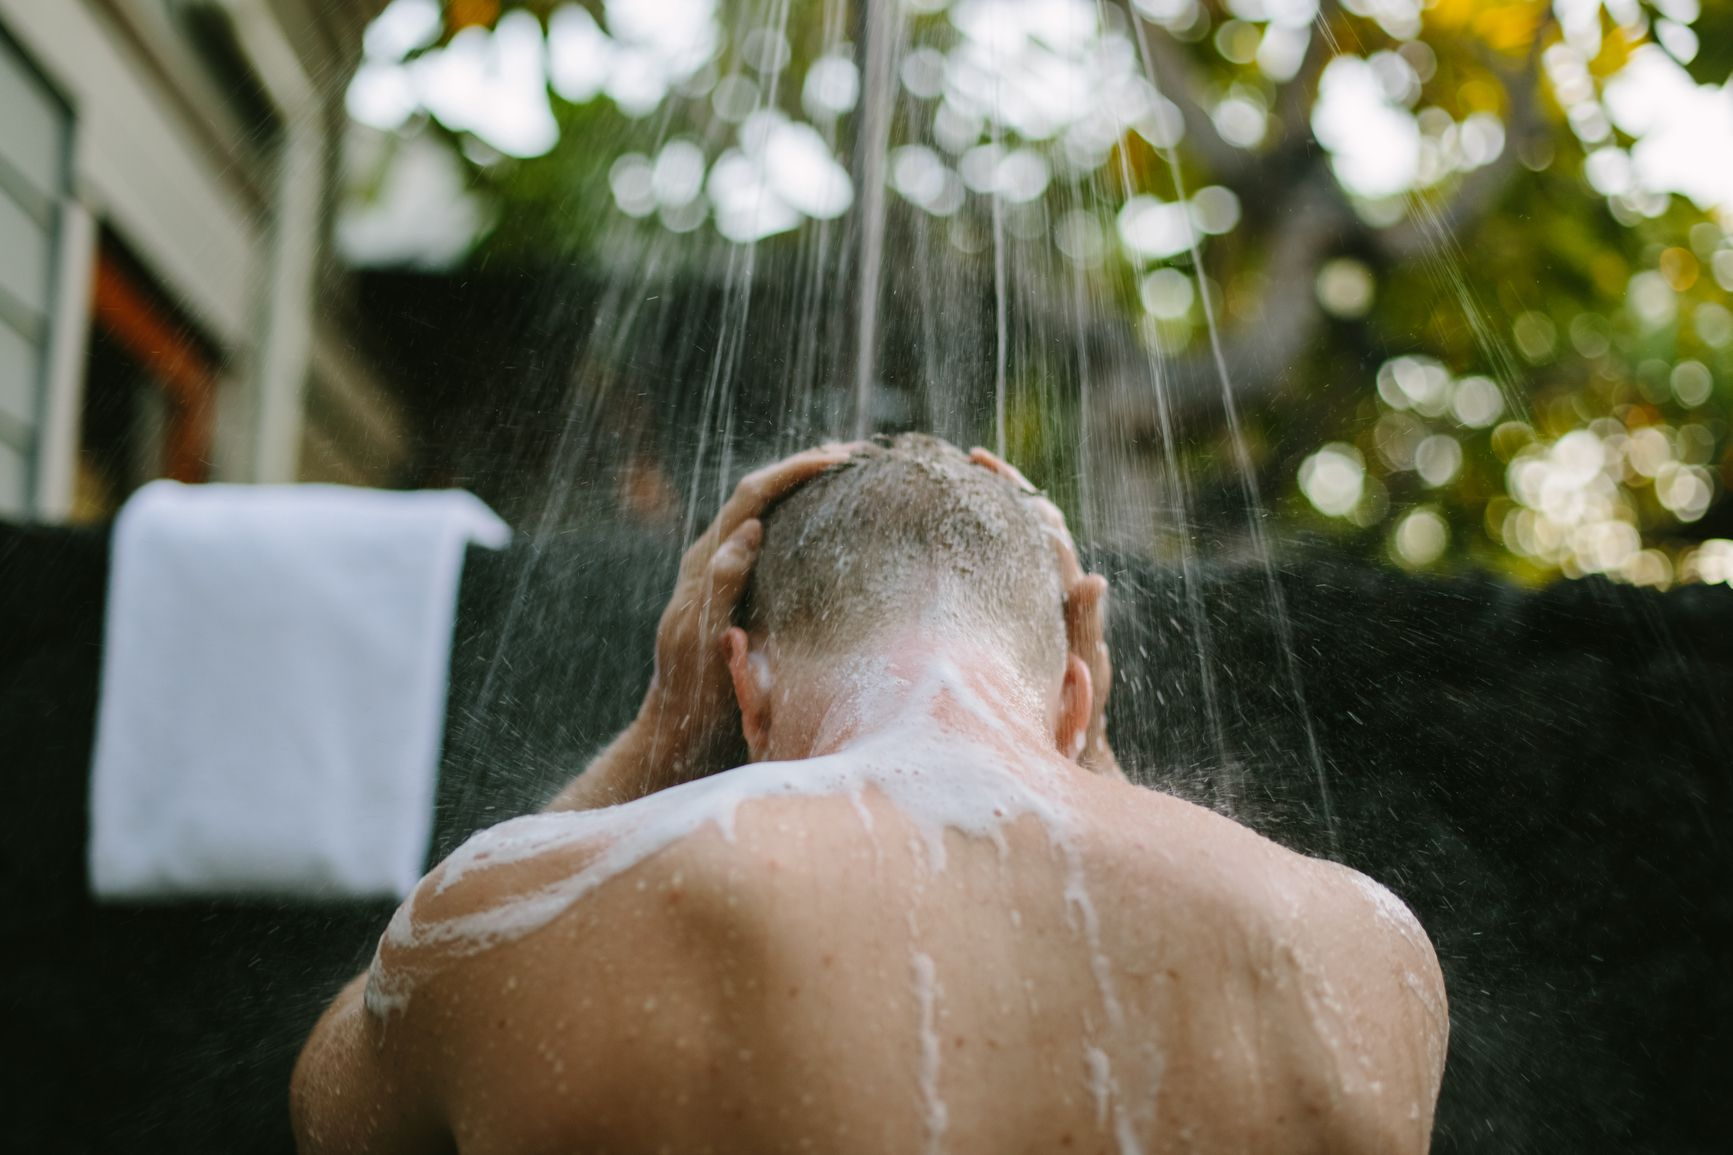 The Best Men's Dandruff Shampoos for a Flake-Free Scalp